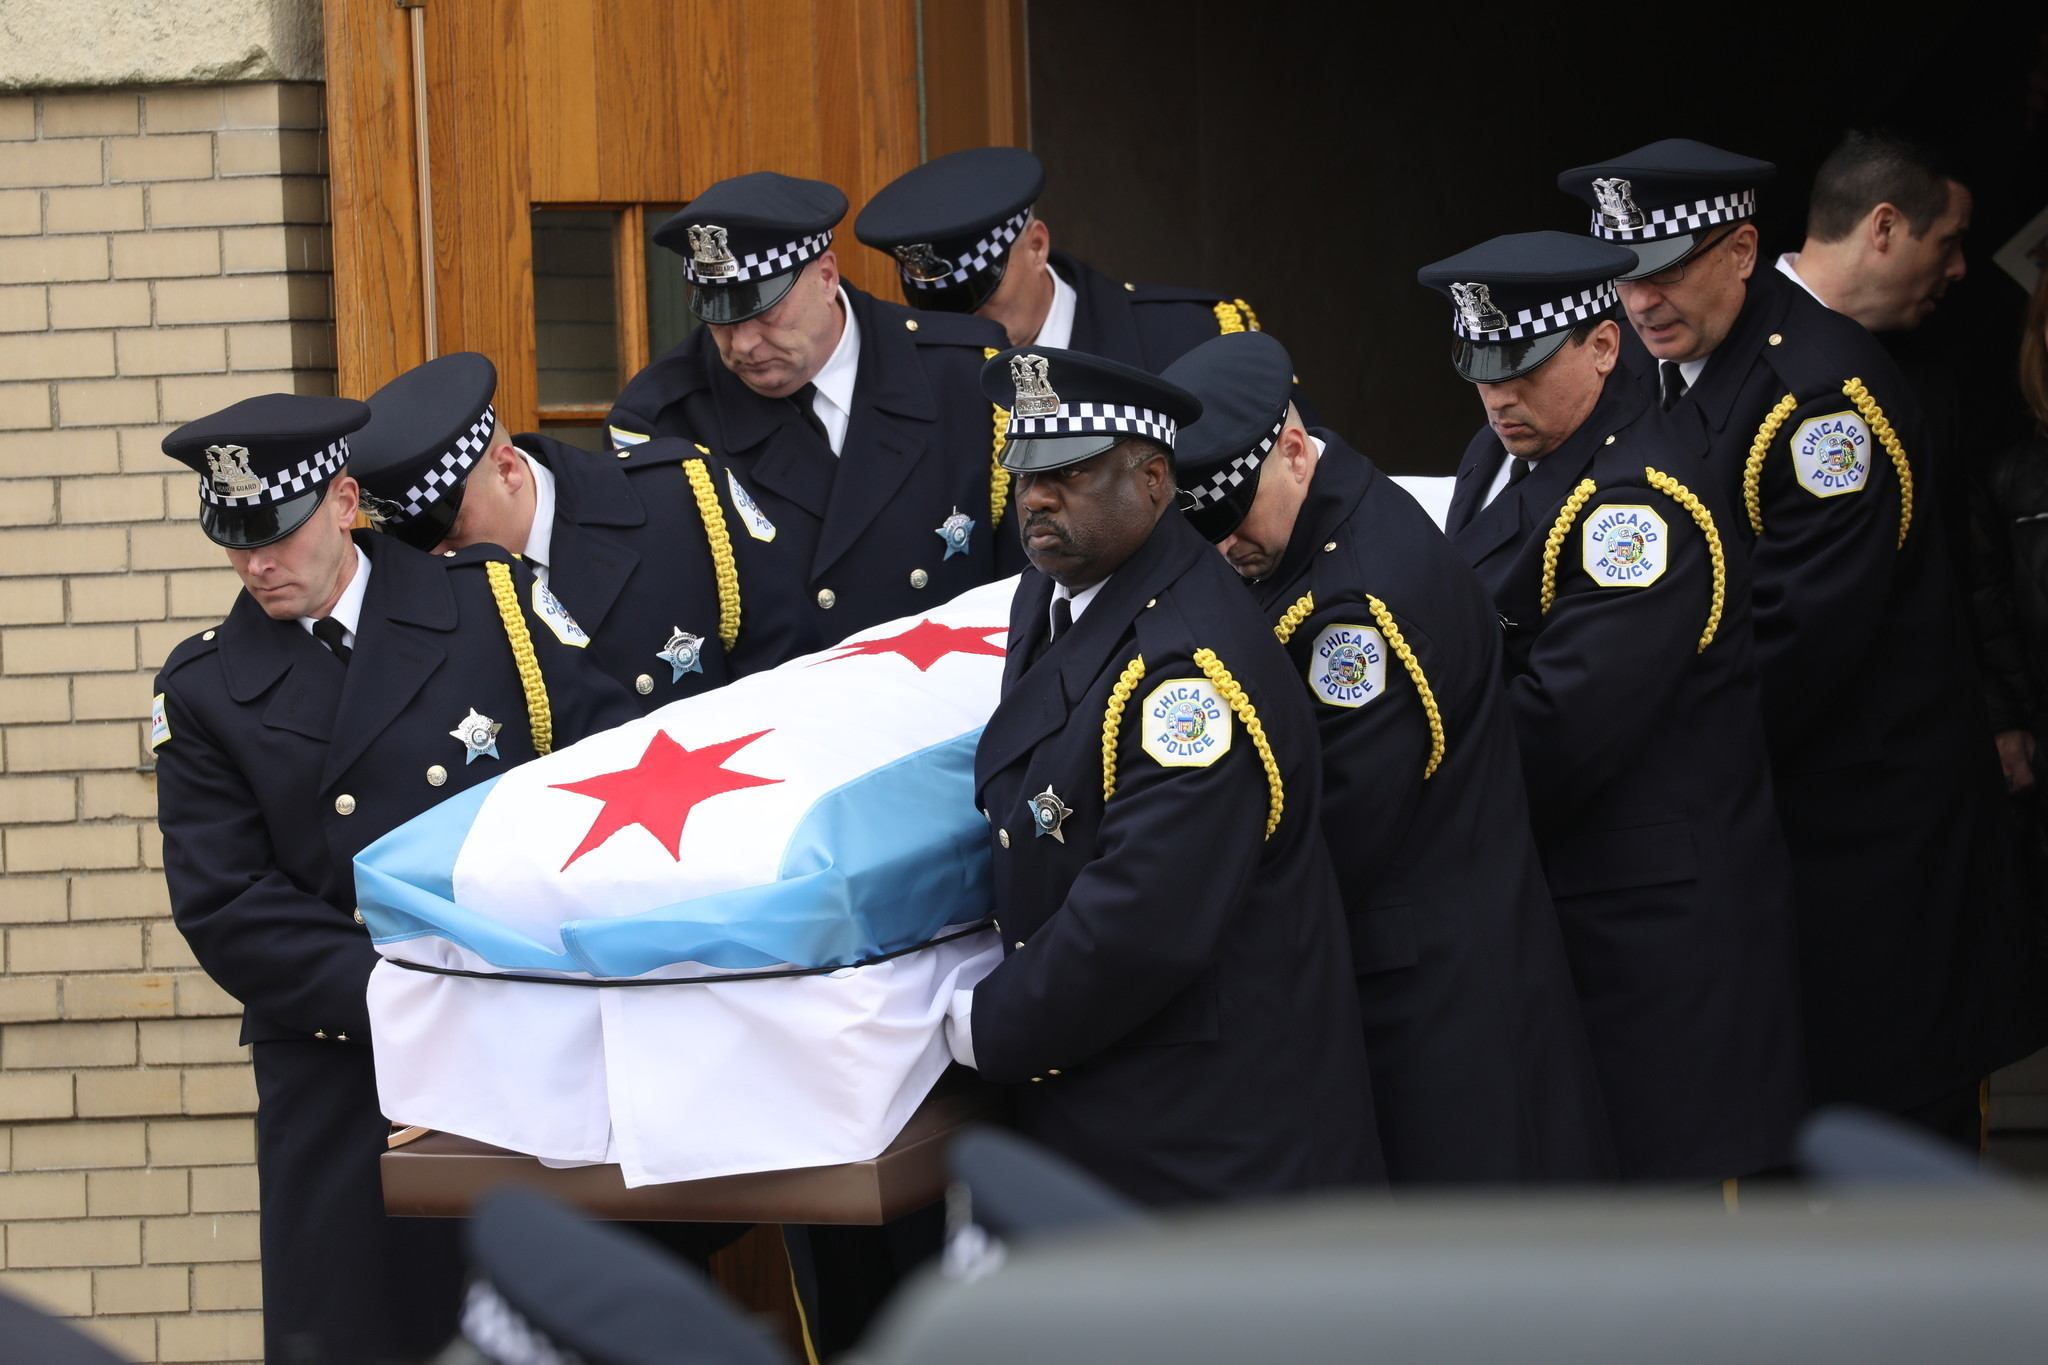 Ct-chicago-police-officer-shot-photos-20180213